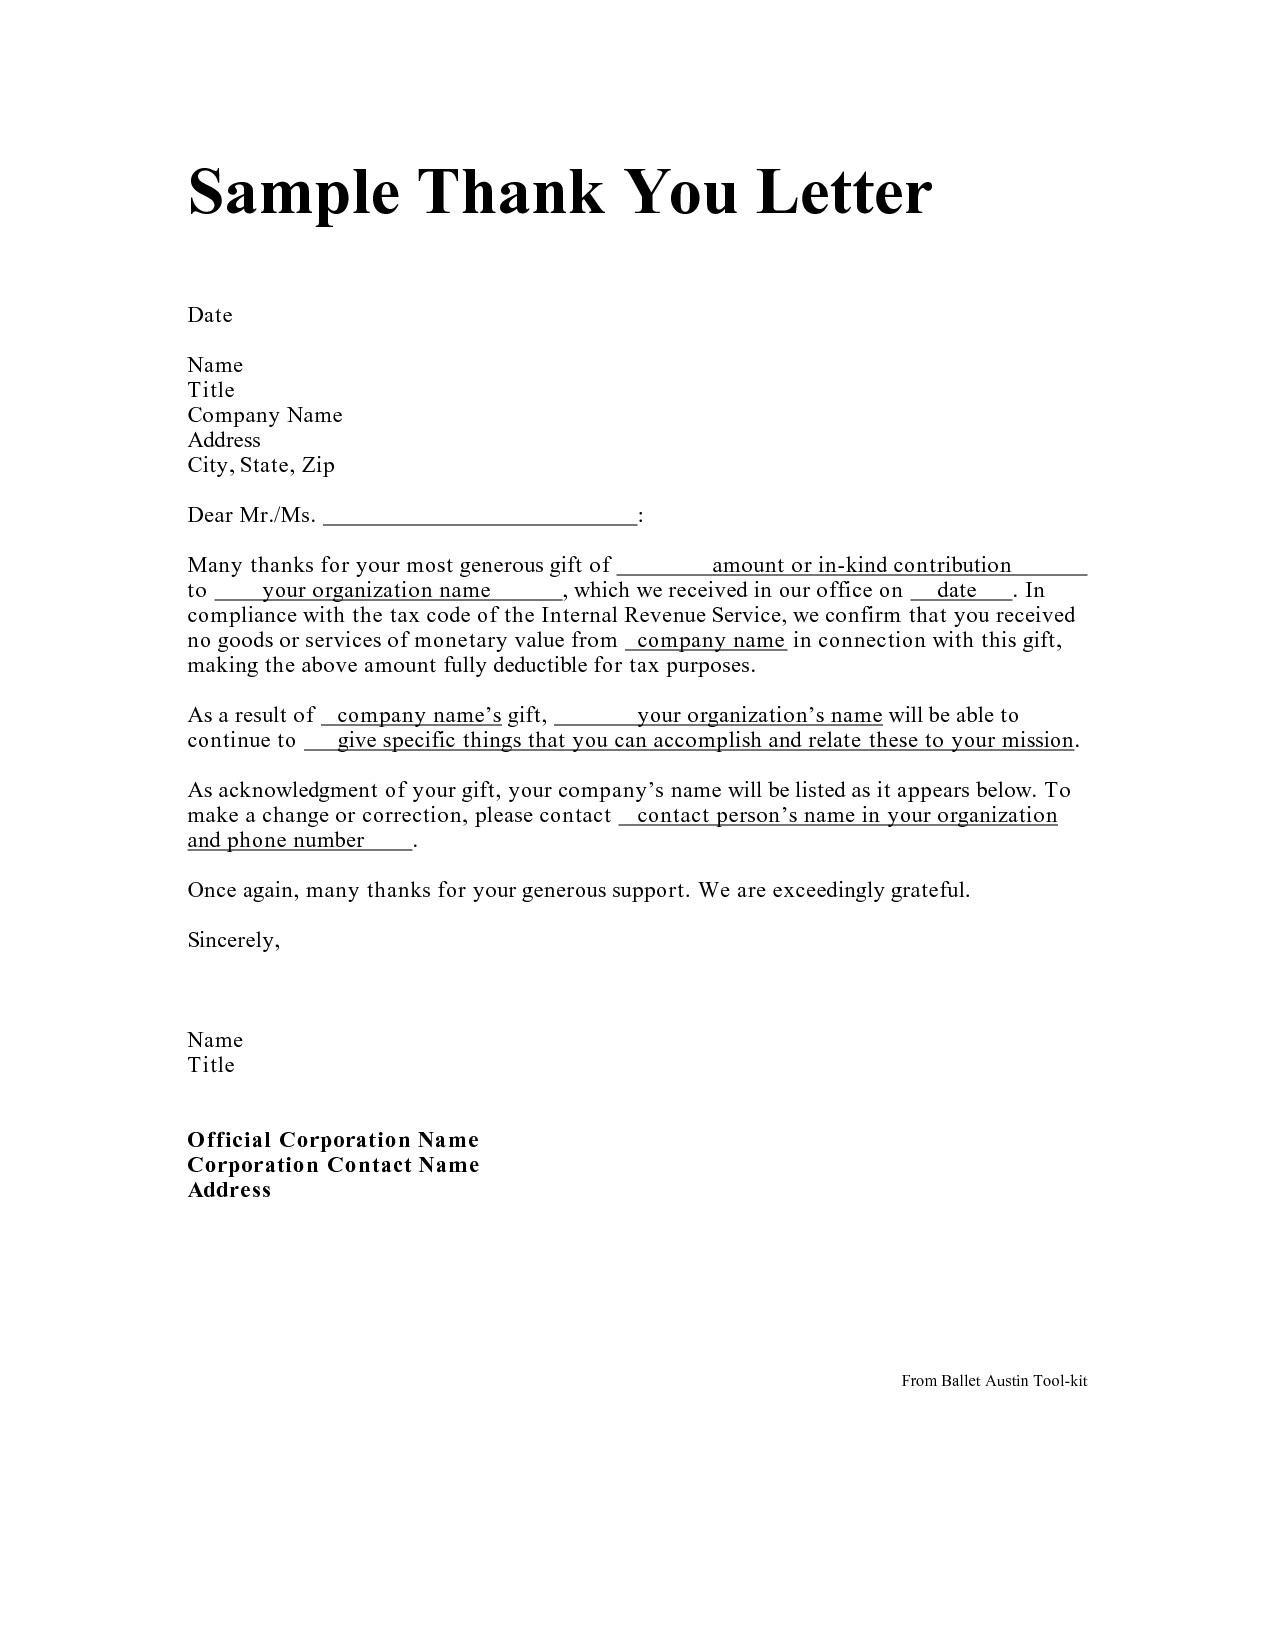 Veteran Letter Template - Personal Thank You Letter Personal Thank You Letter Samples